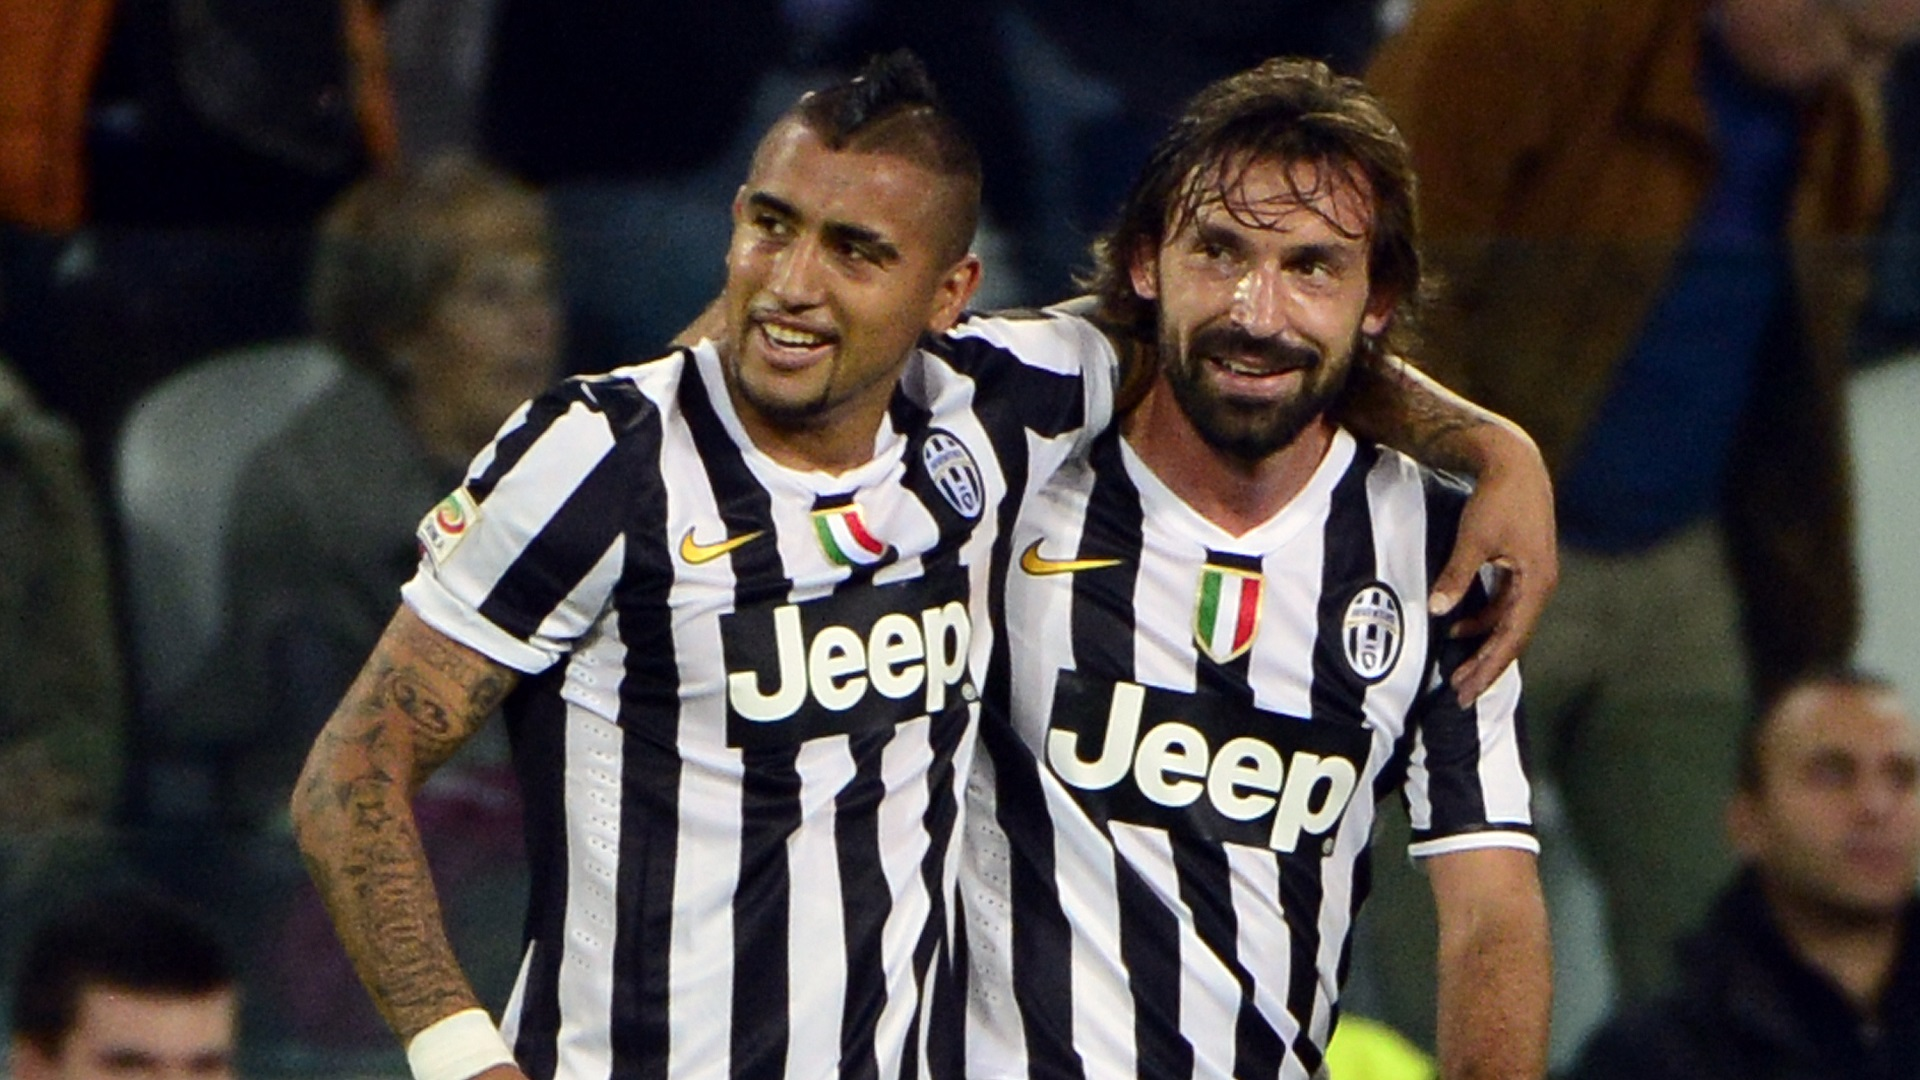 Vidal blasts Barcelona management on and off pitch, hints at Serie A return